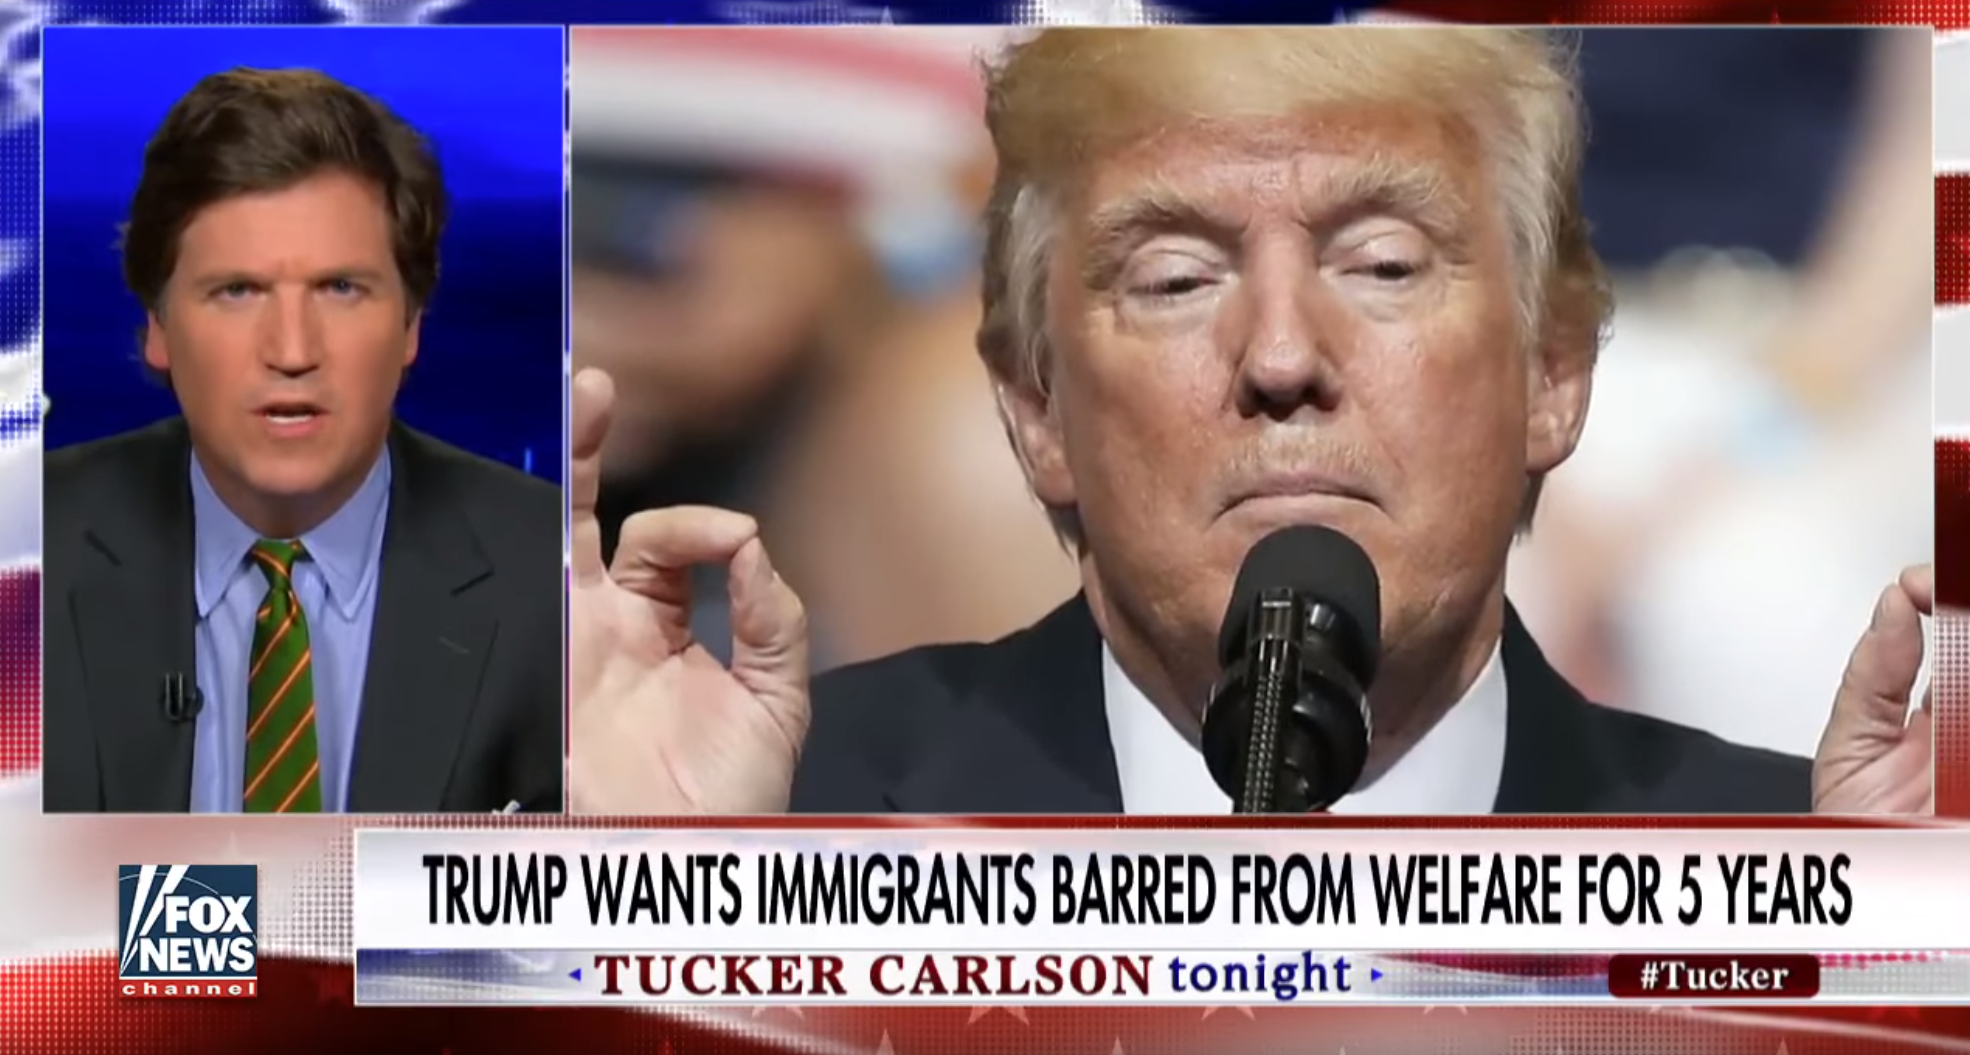 Tucker complaining about immigrants on welfare next to a photo of Donald Trump